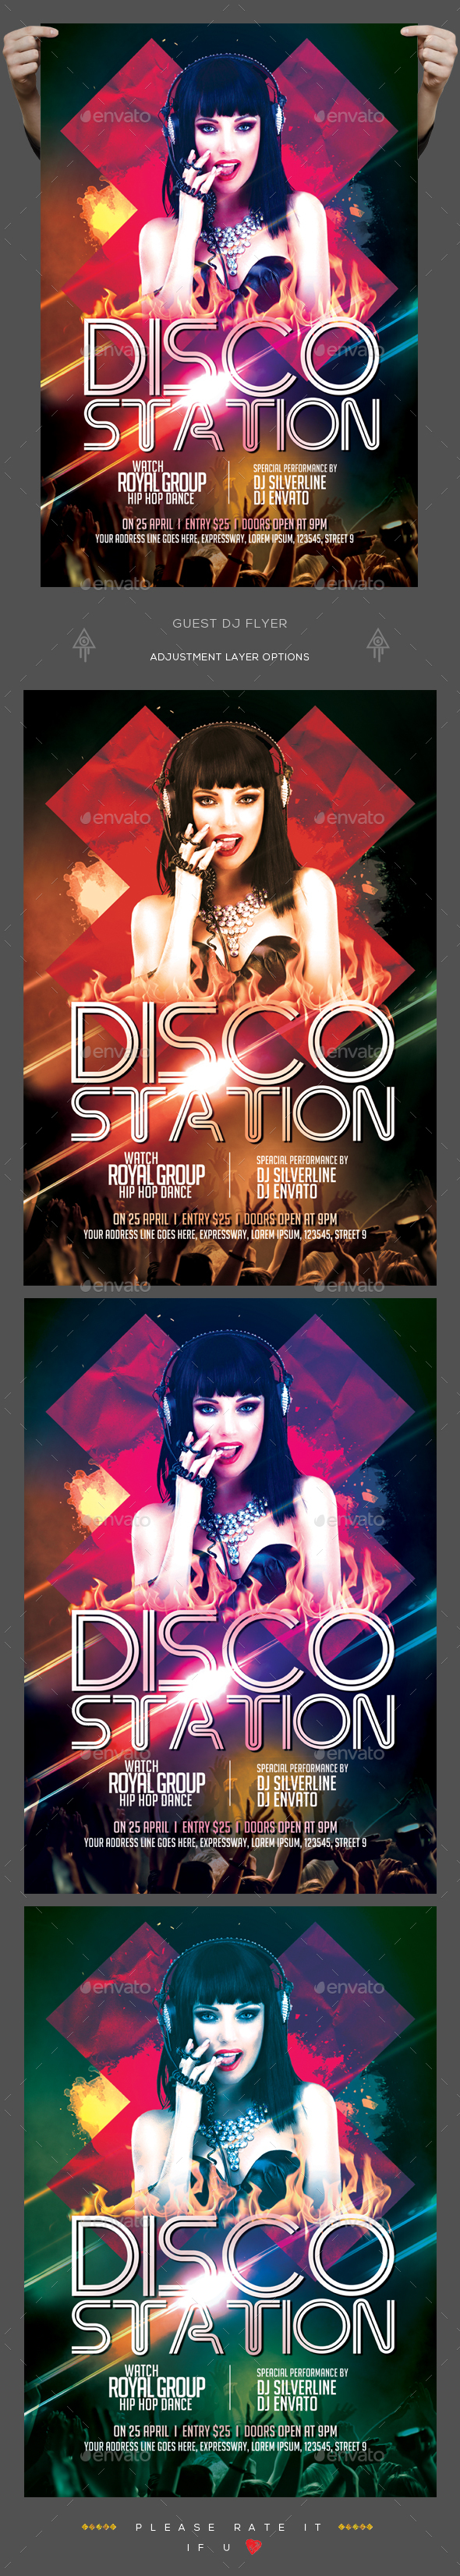 Disco Station Flyer - Clubs & Parties Events